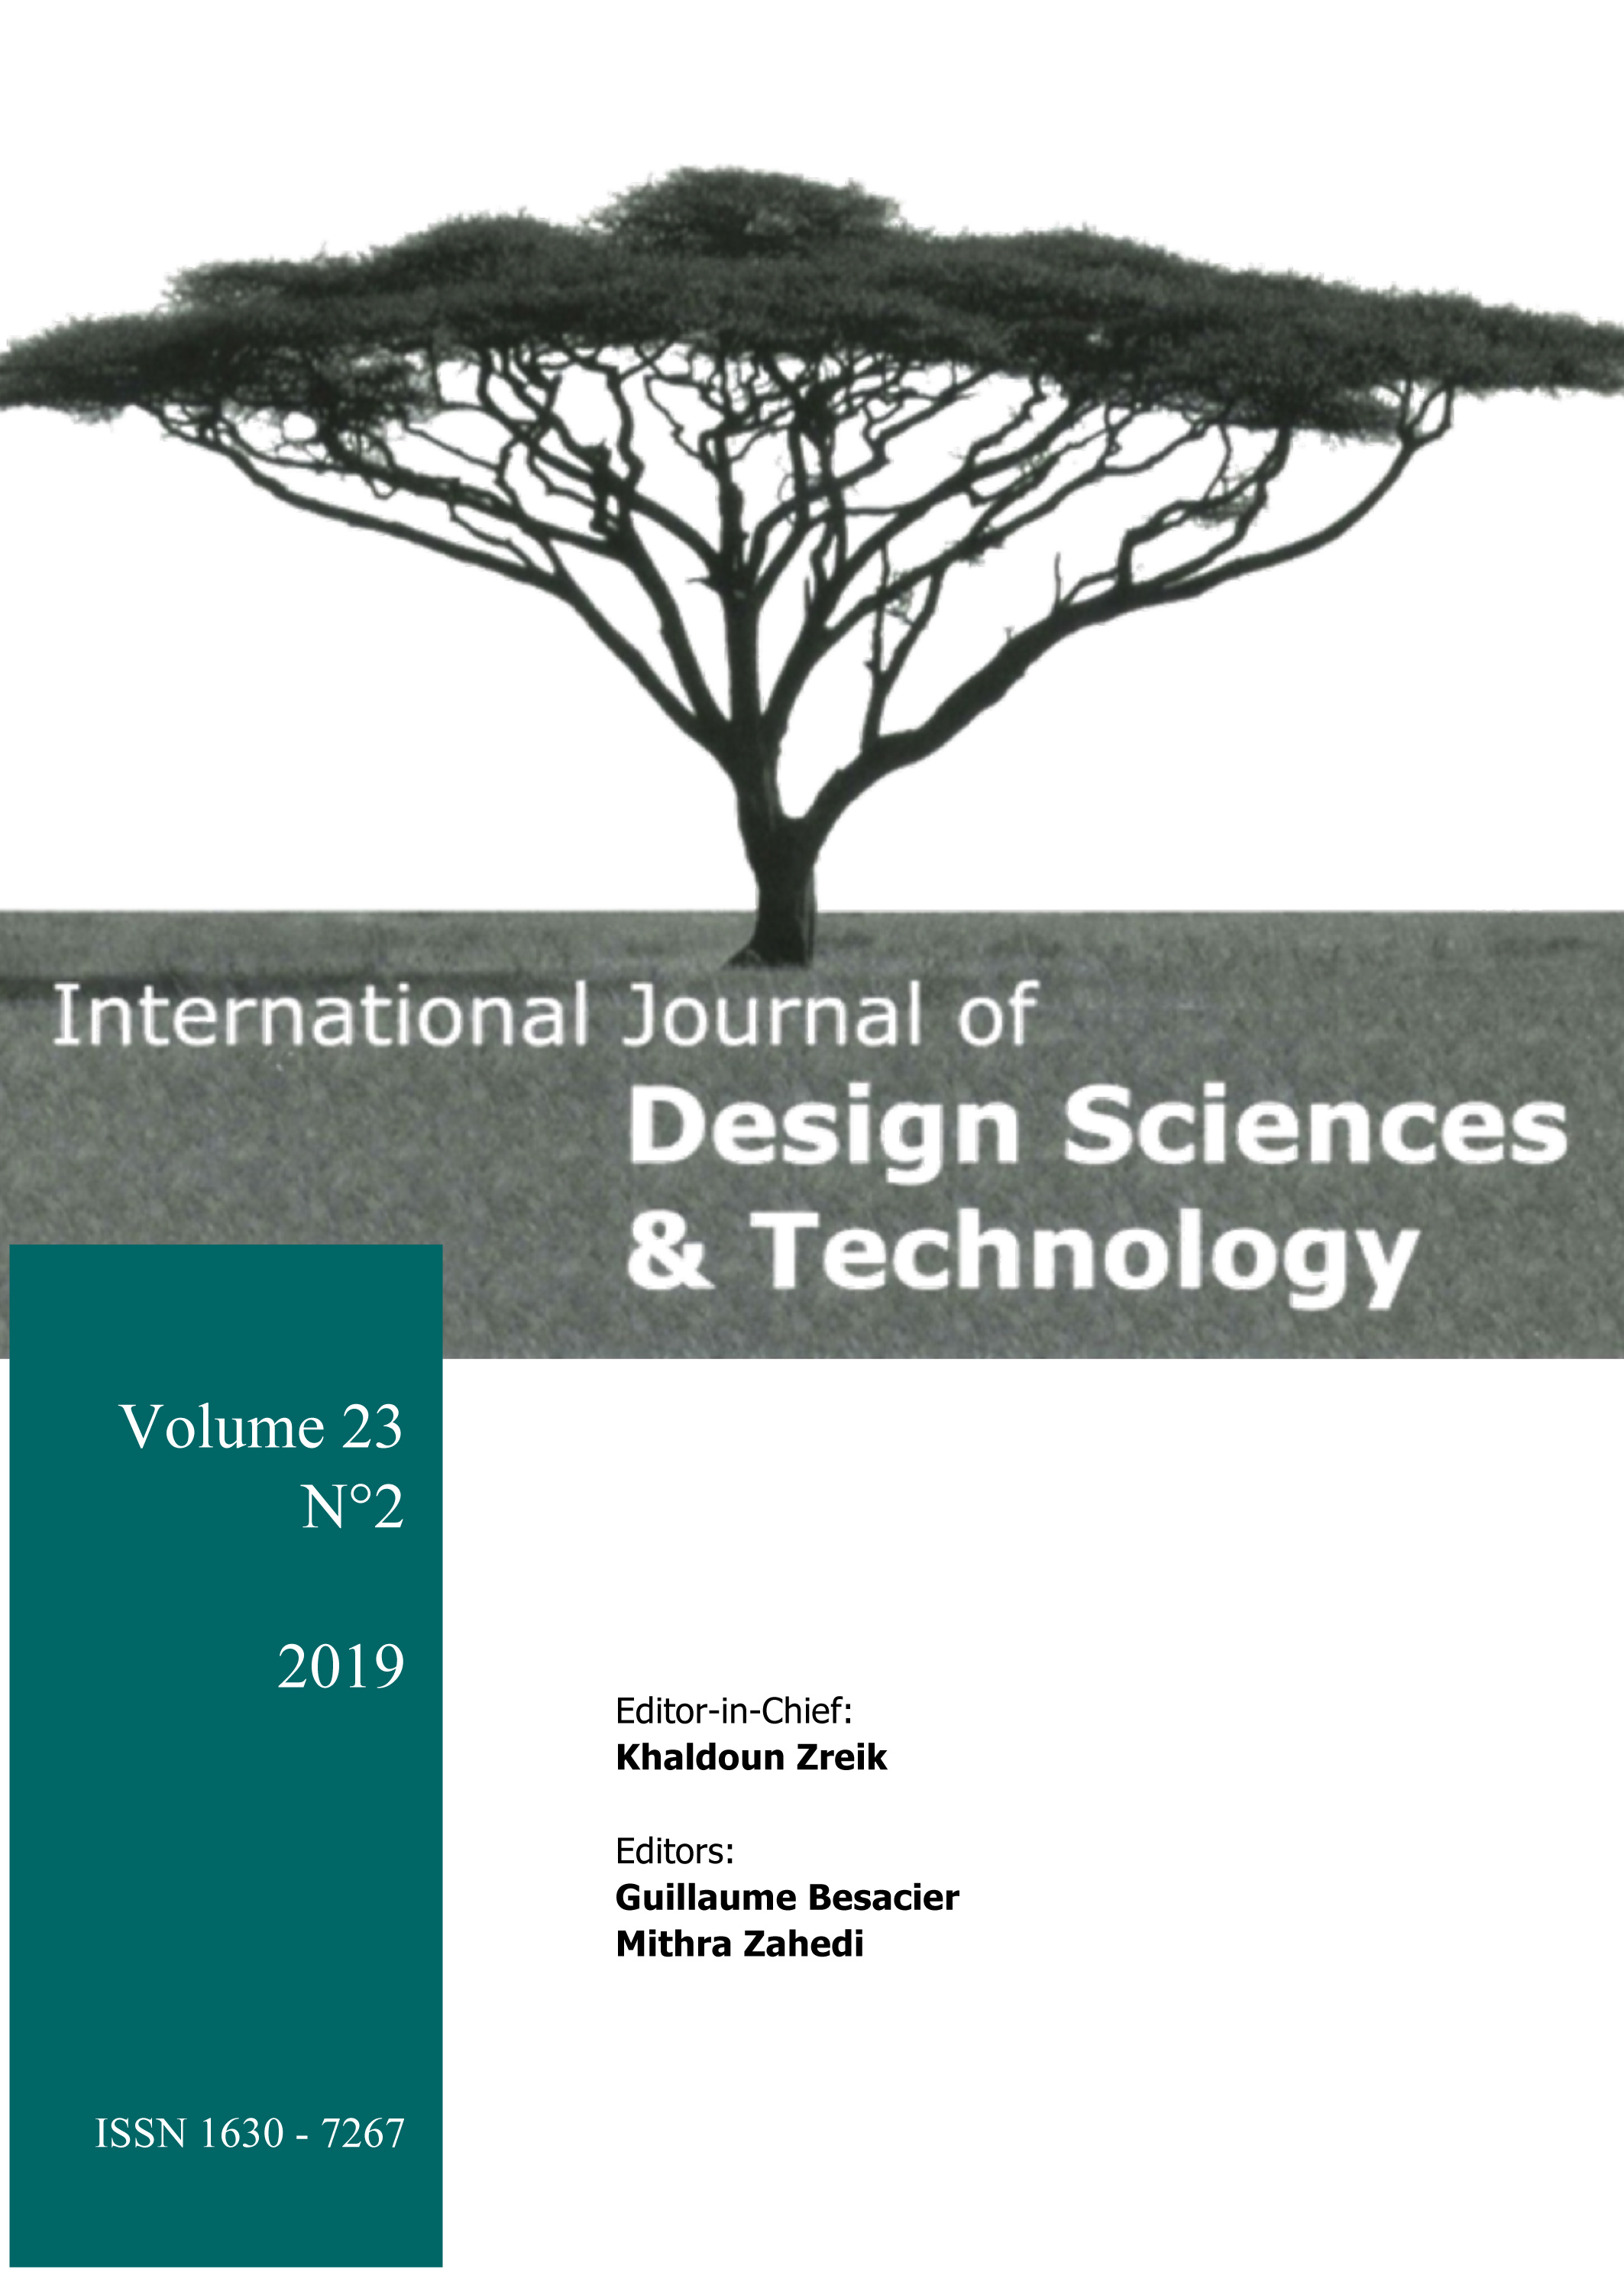 International Journal of Design Sciences & Technology